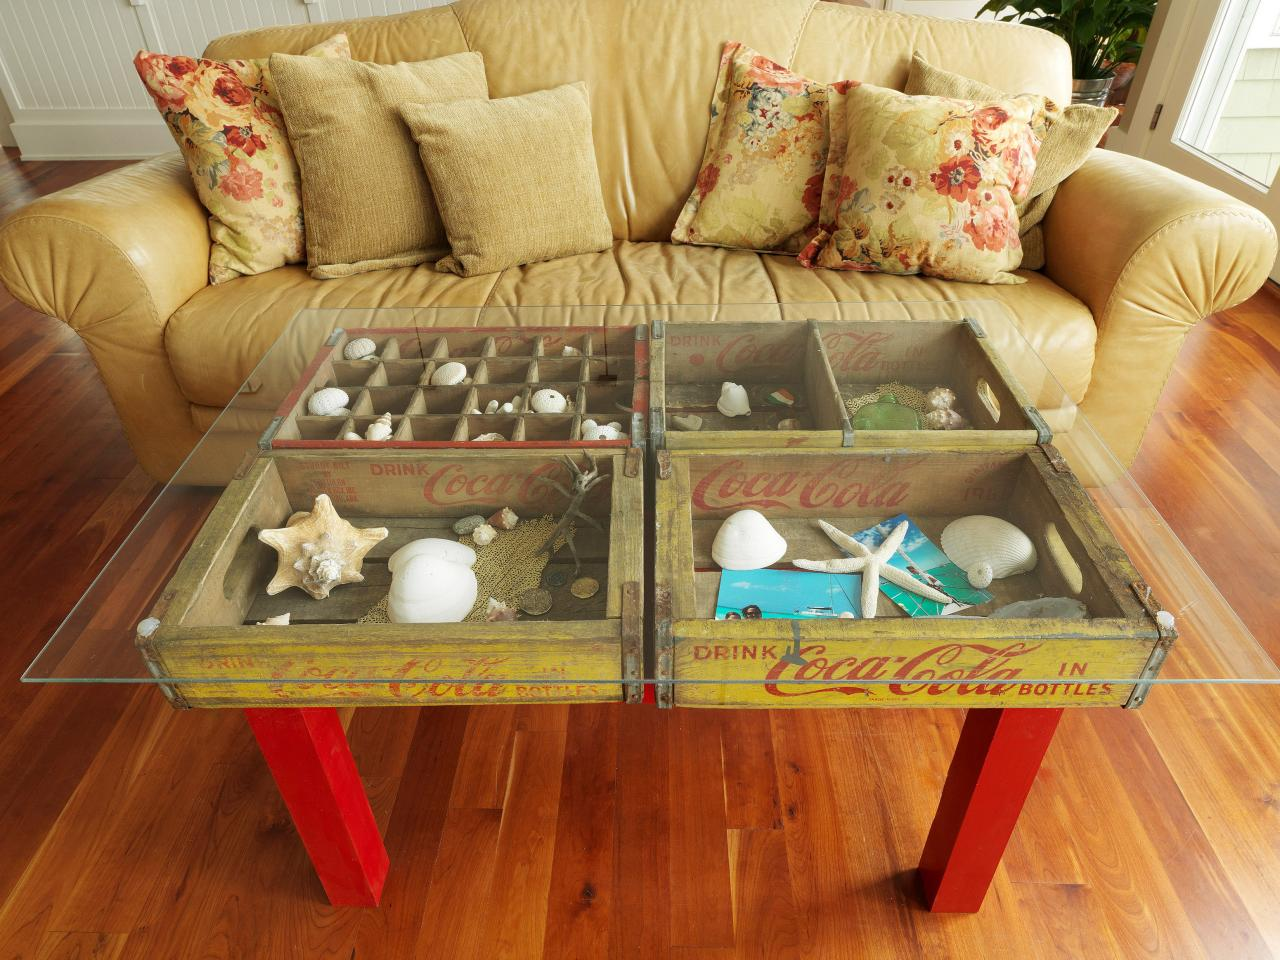 22 clever ways to repurpose furniture diy home decor and decorating ideas diy Home decorating ideas using junk